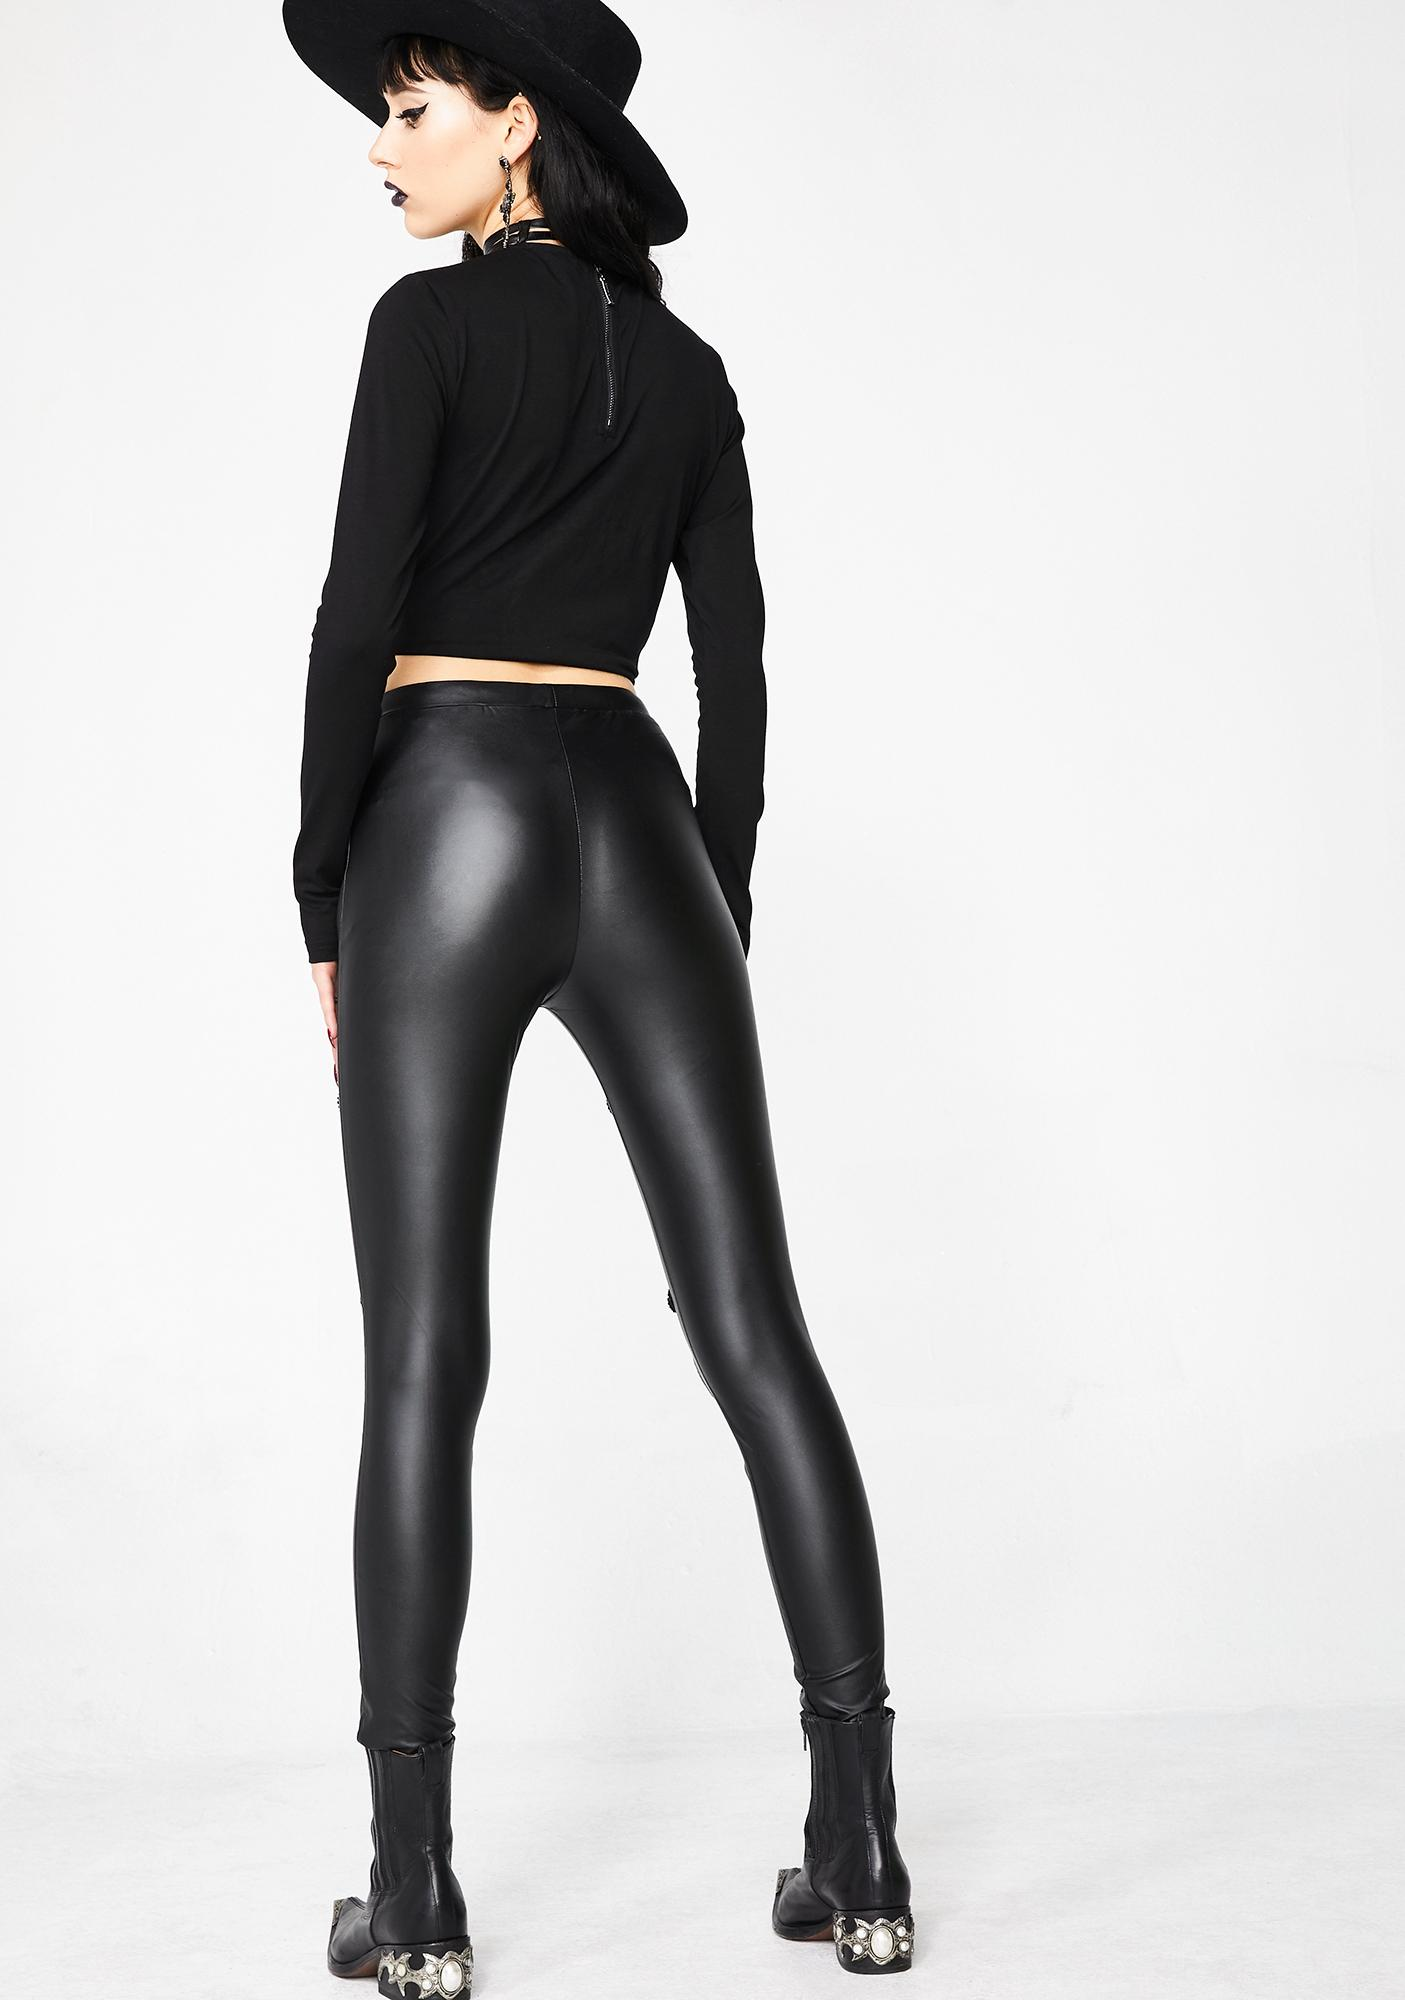 Punk Rave Vampire Sweet Love Leather Gothic Leggings